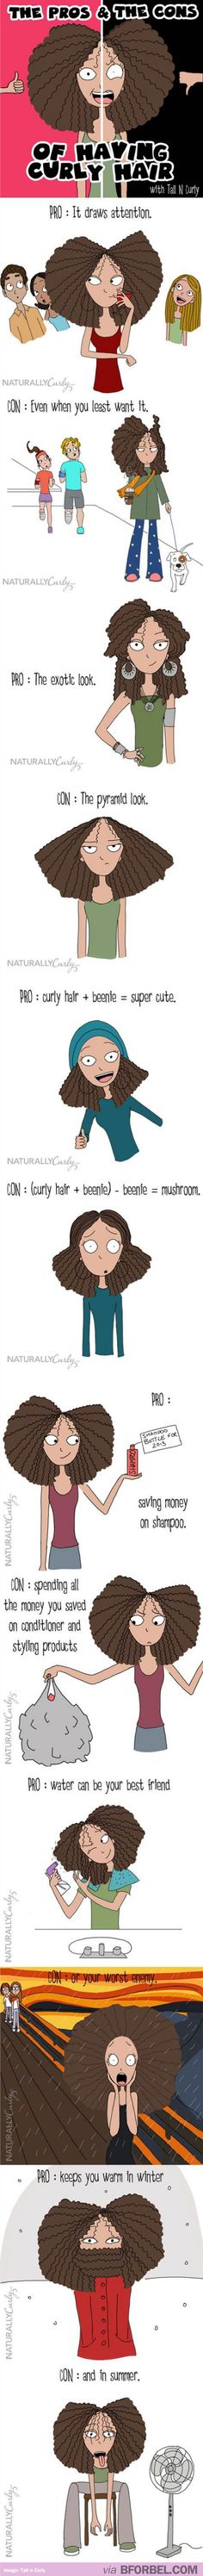 ha ha, I laughed so hard at this!!! Totally relate able.....without my pixie...I'm a spiral curly haired mess.